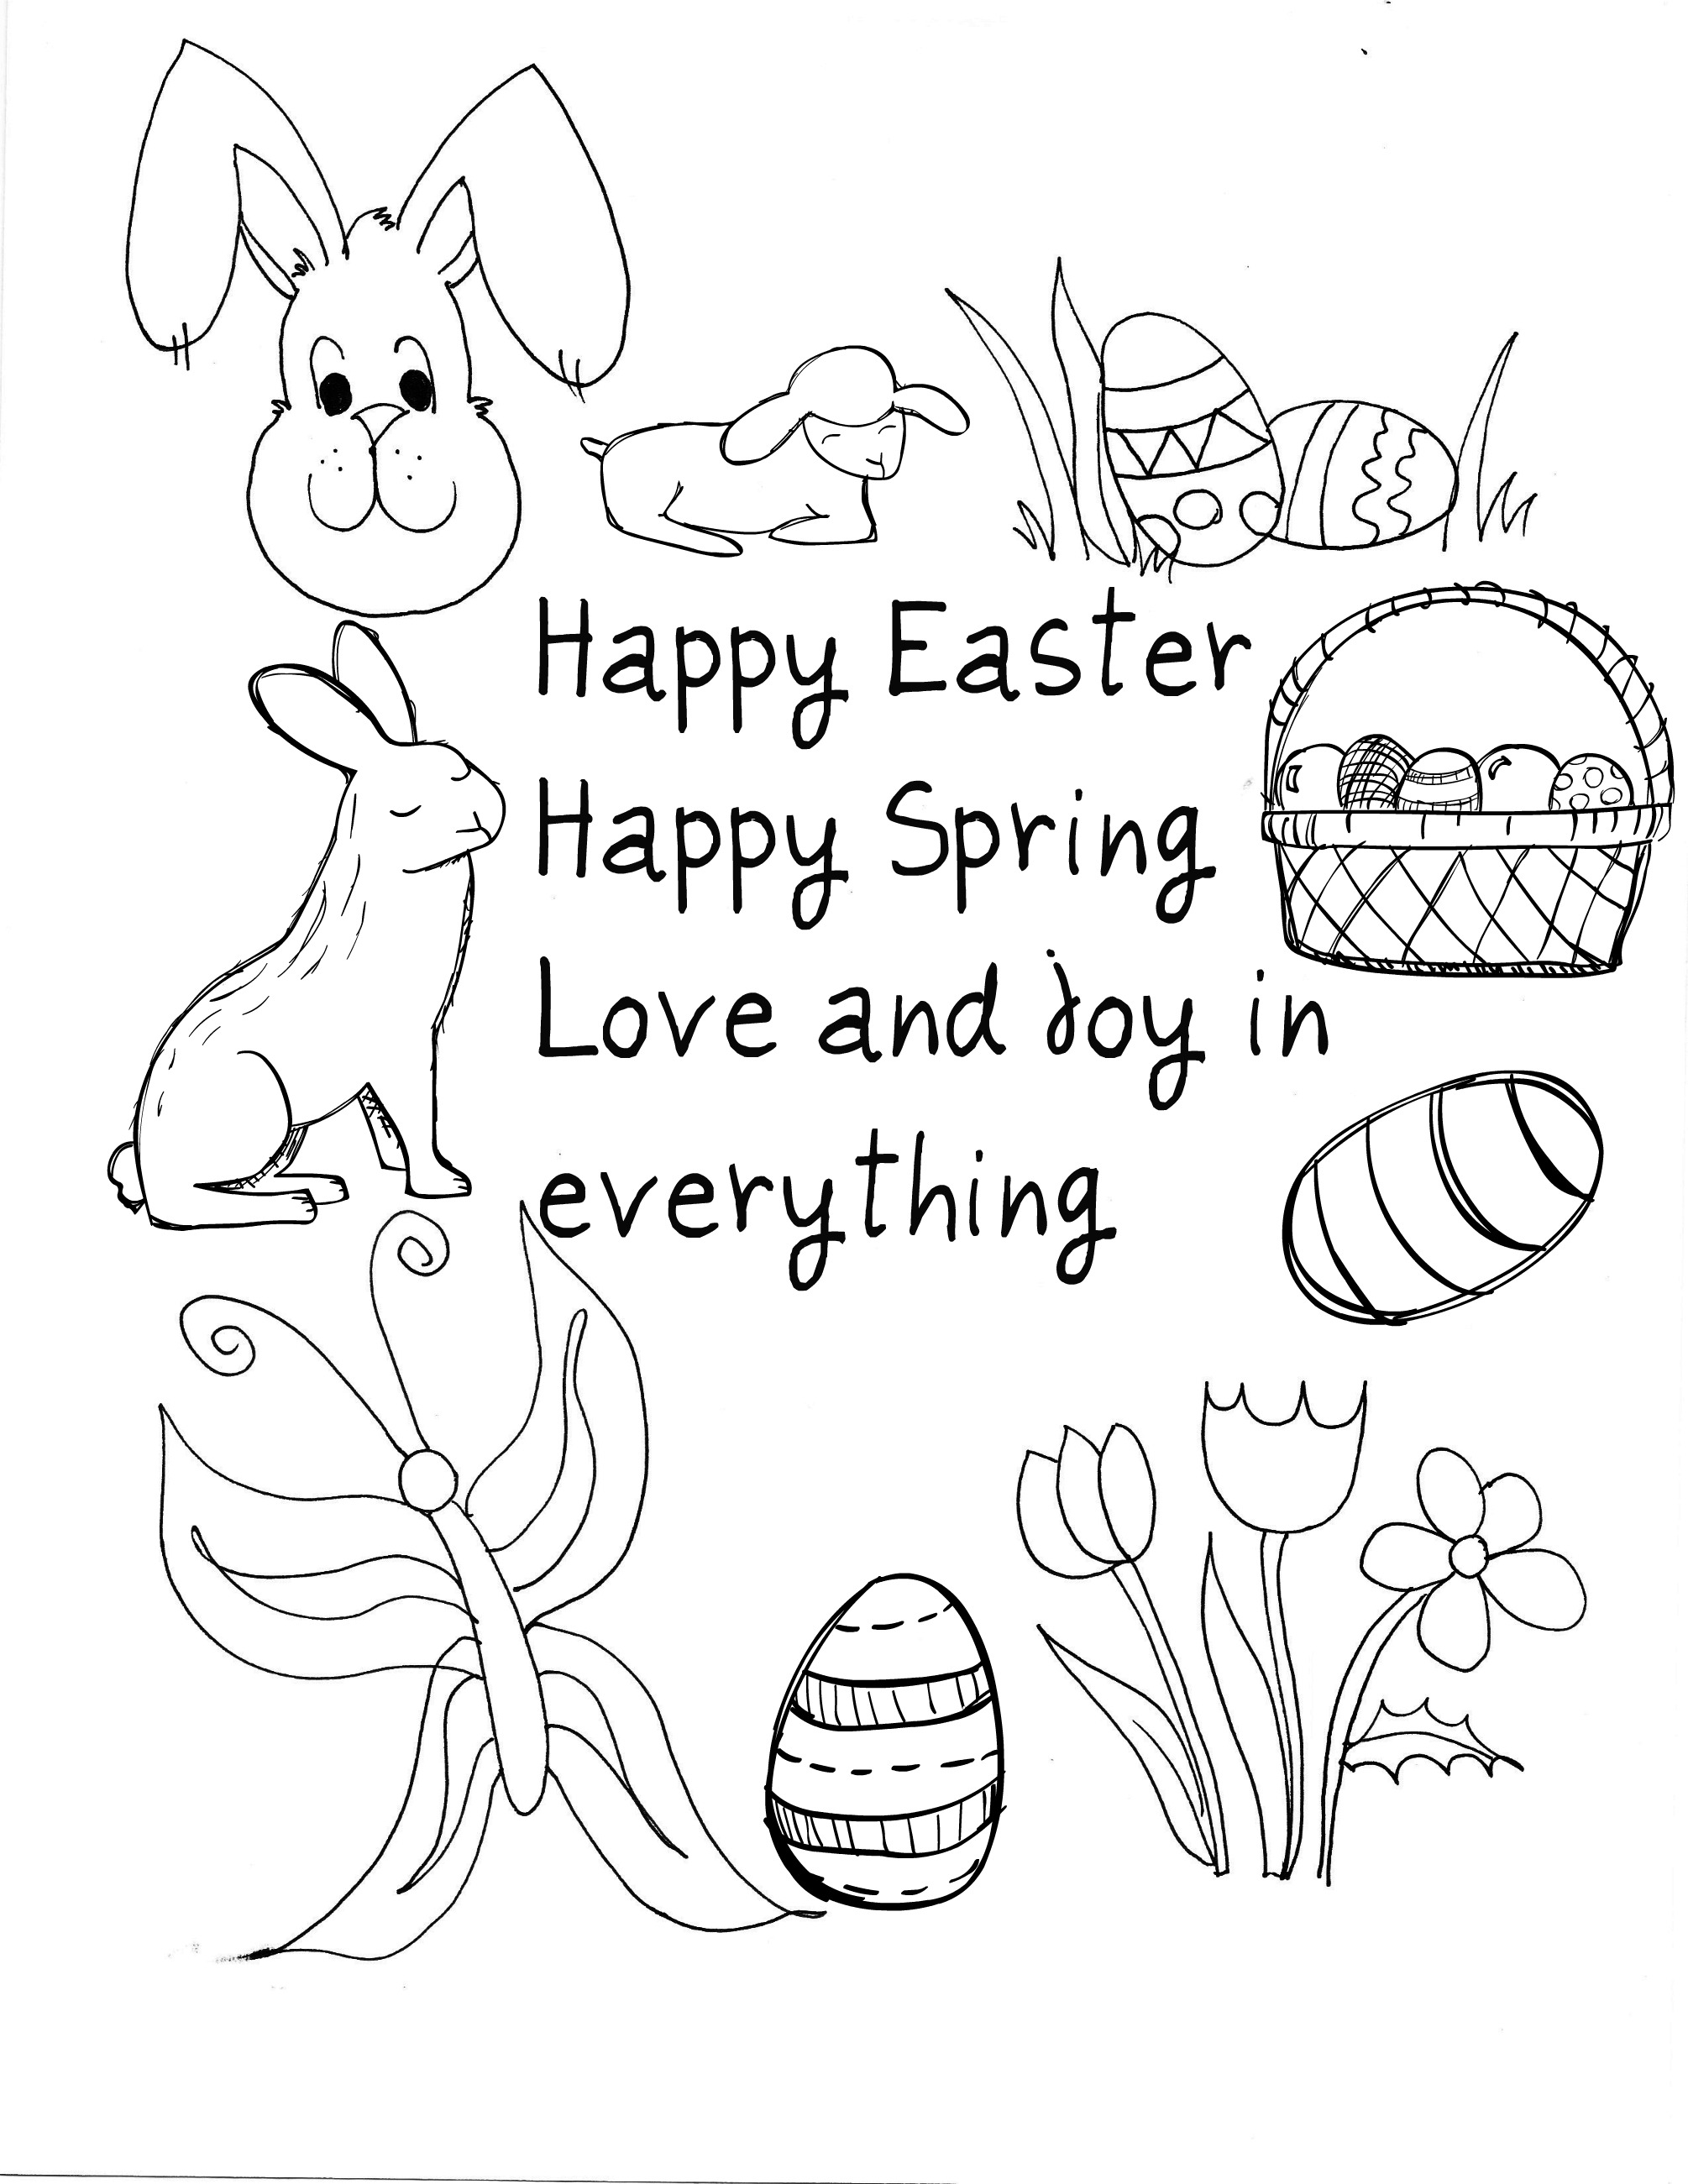 coloring pages about easter - happy easter coloring pages best coloring pages for kids